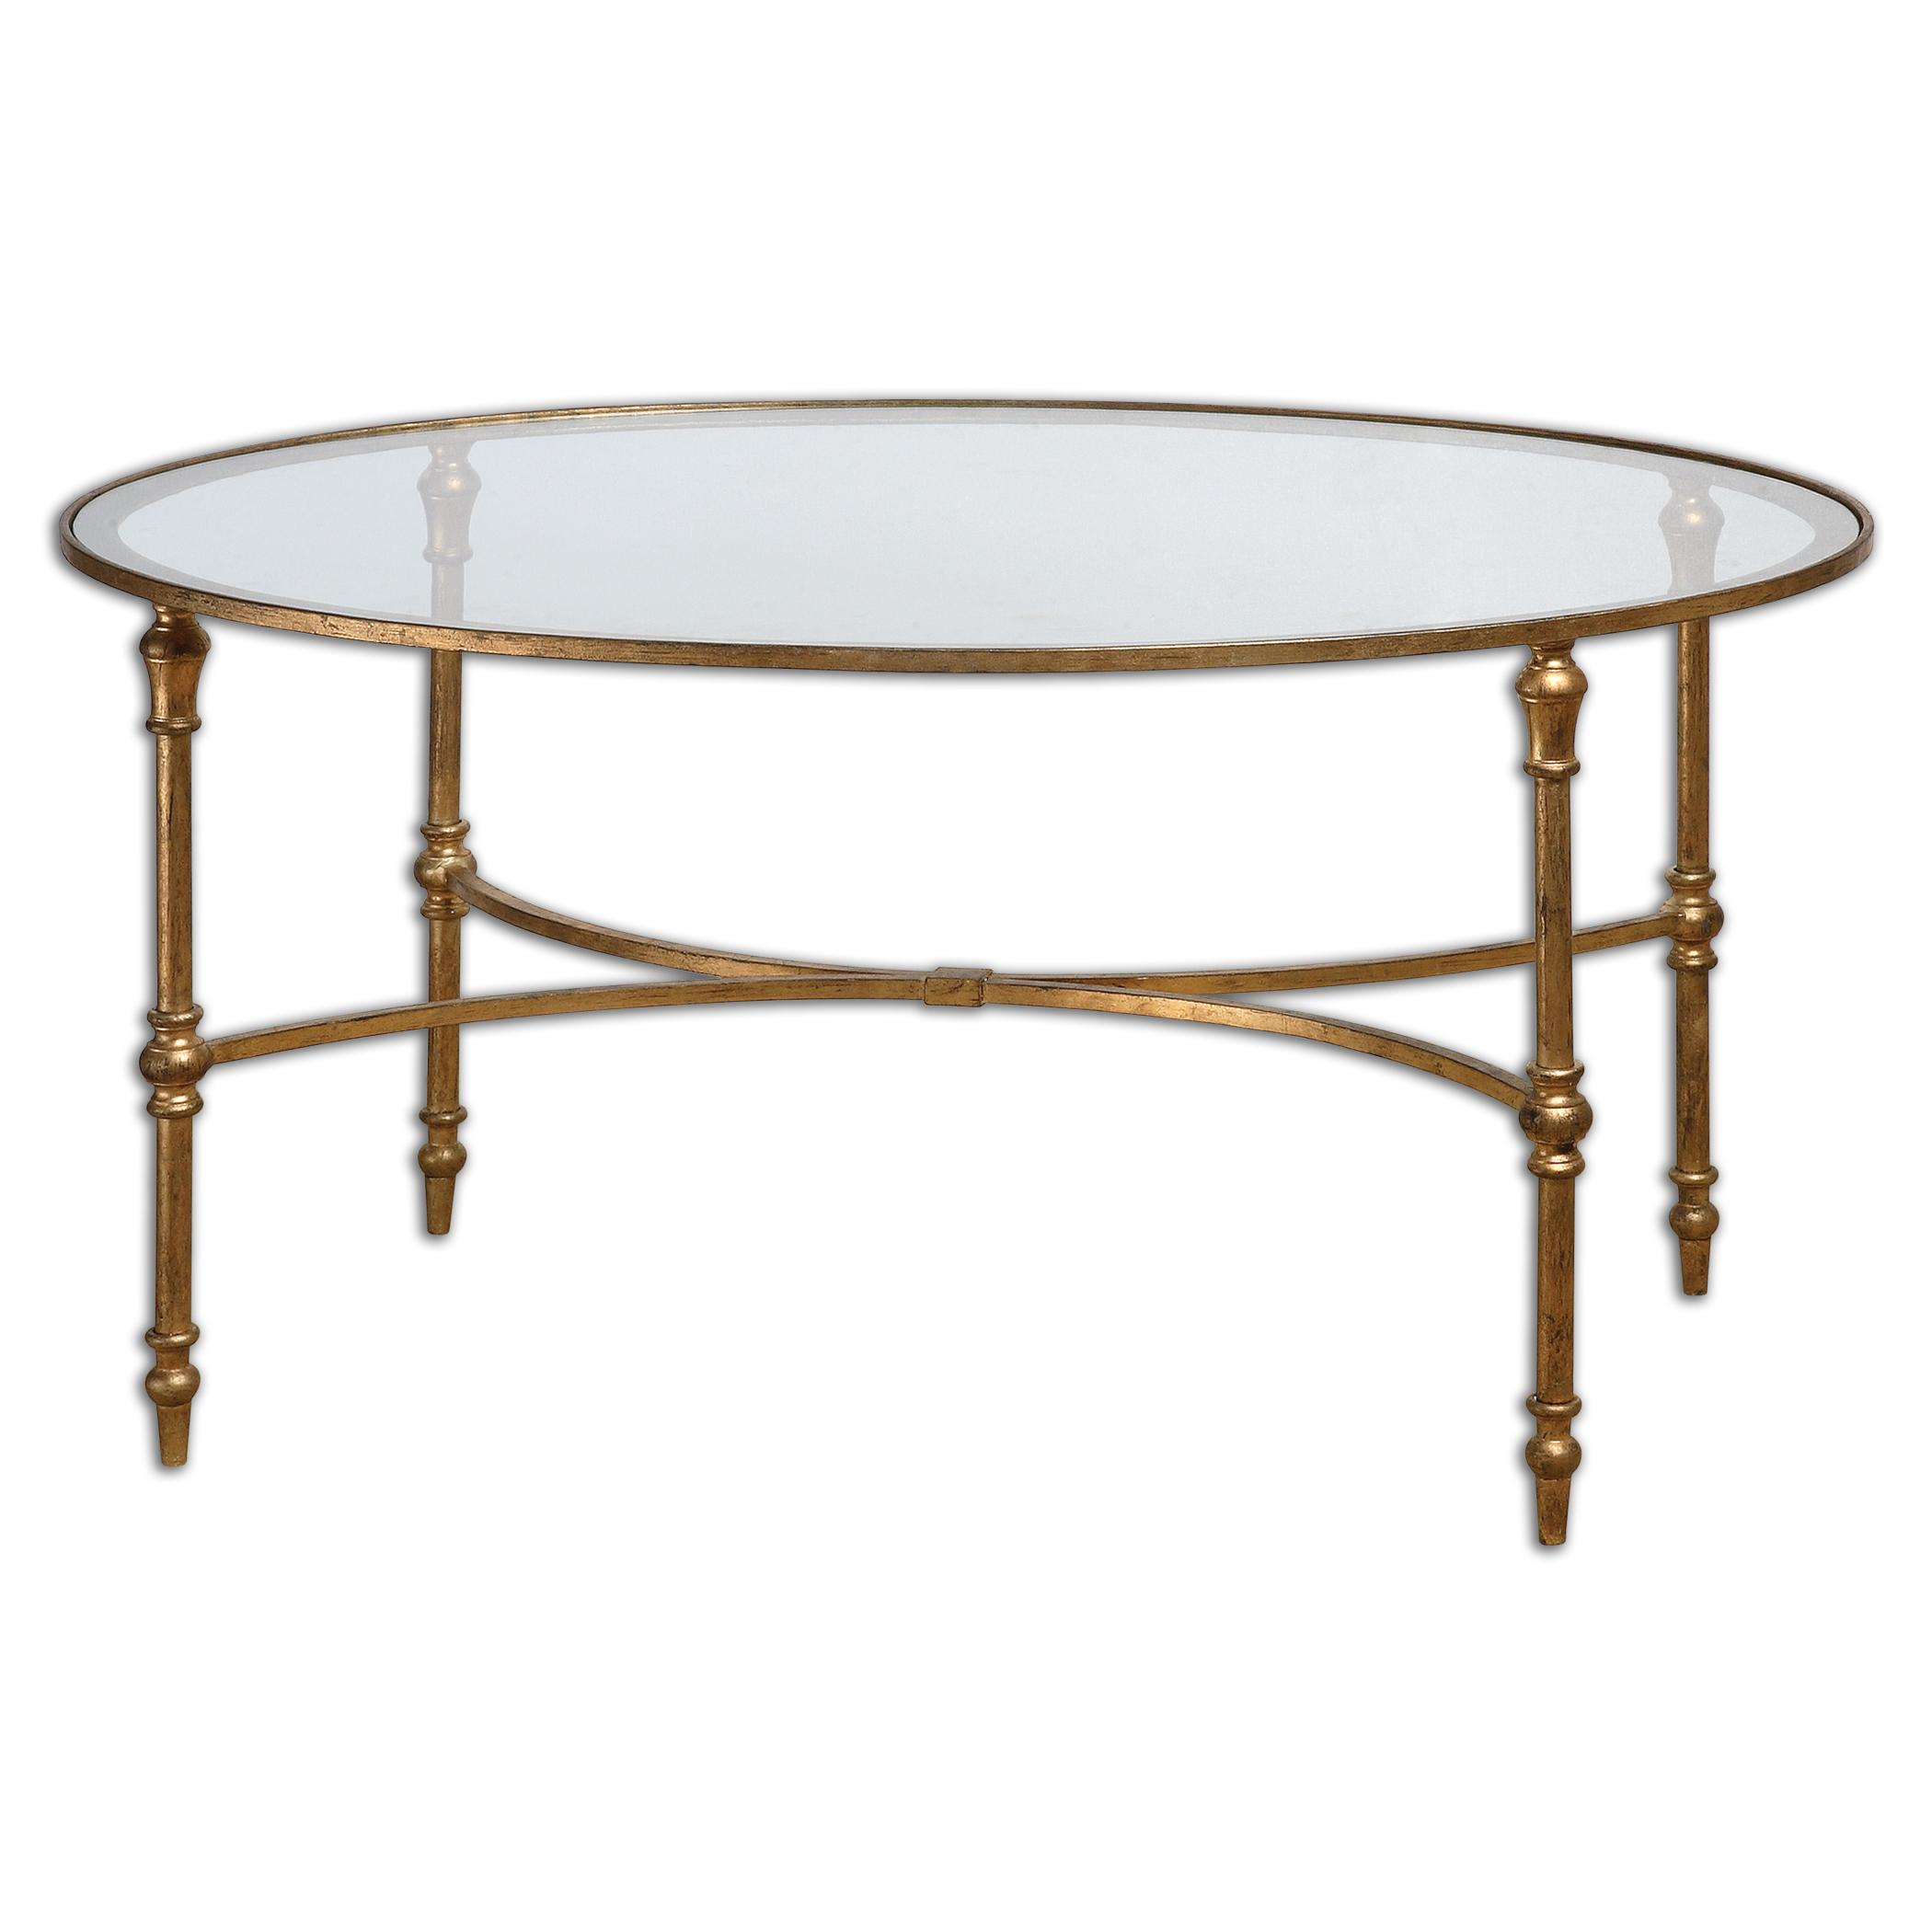 Accent Furniture - Occasional Tables Vitya Glass Coffee Table by Uttermost at Upper Room Home Furnishings